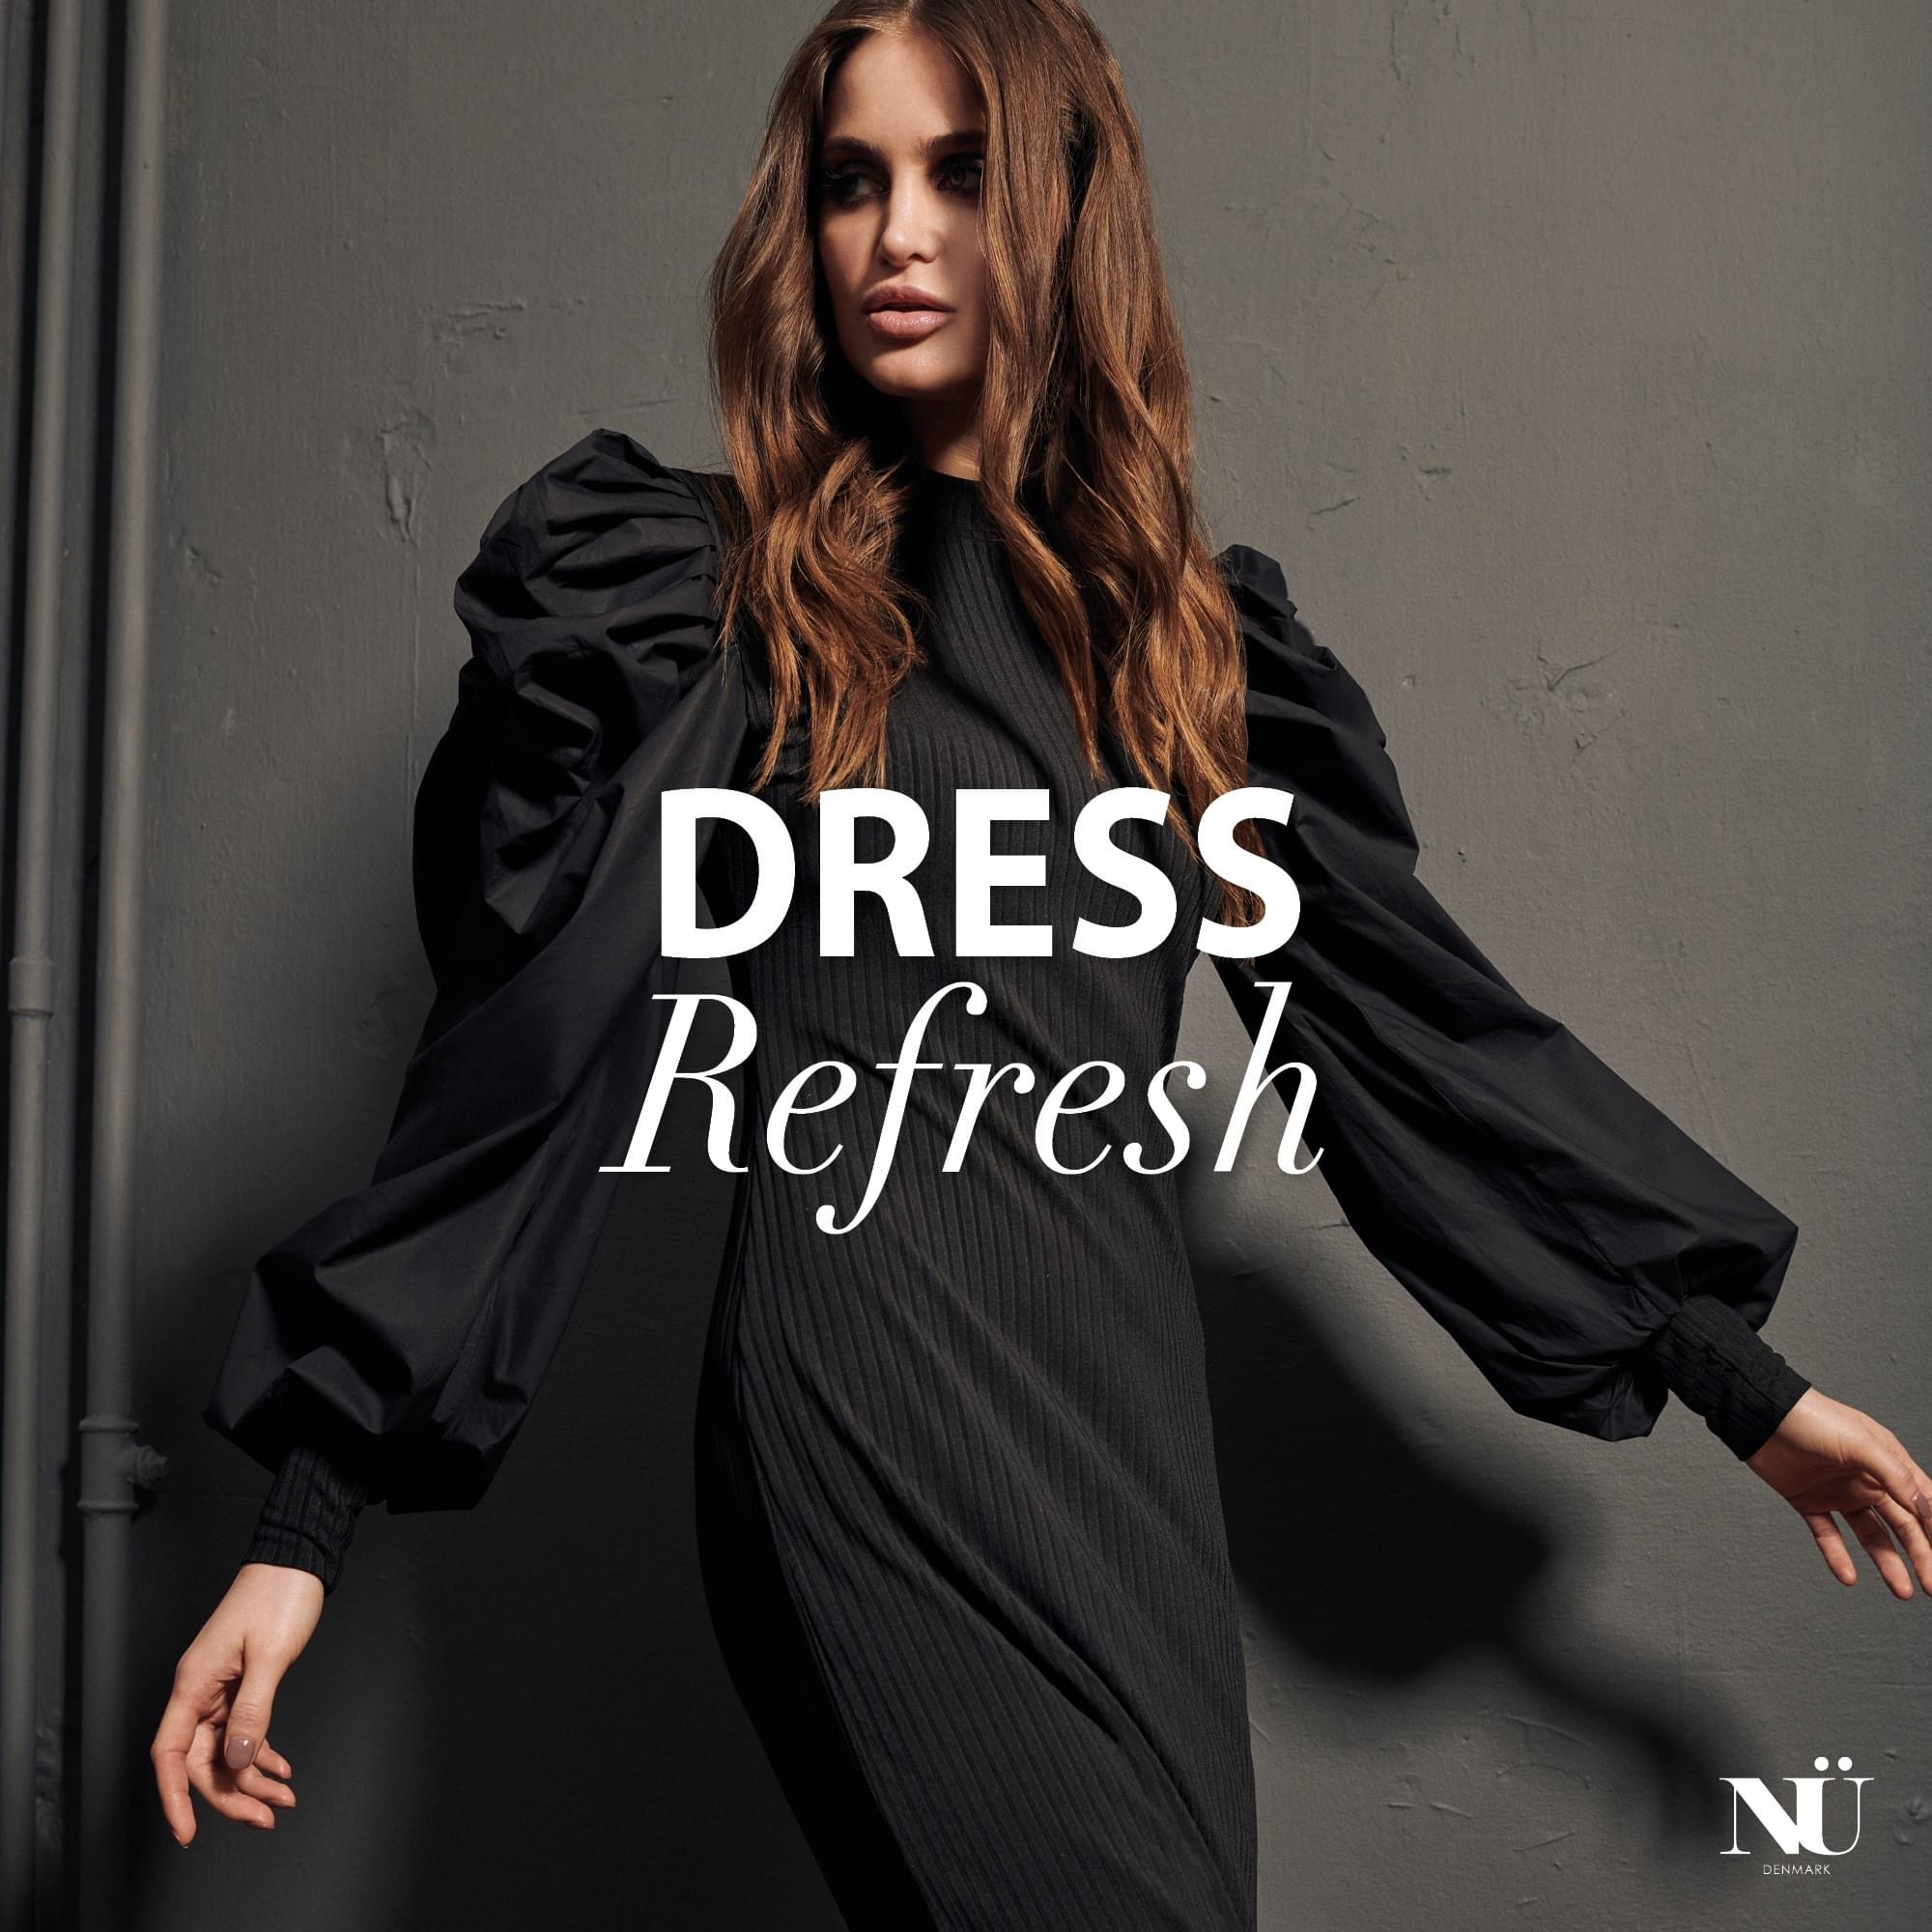 Faria Dress Nu Denmark IMAGE BY ME